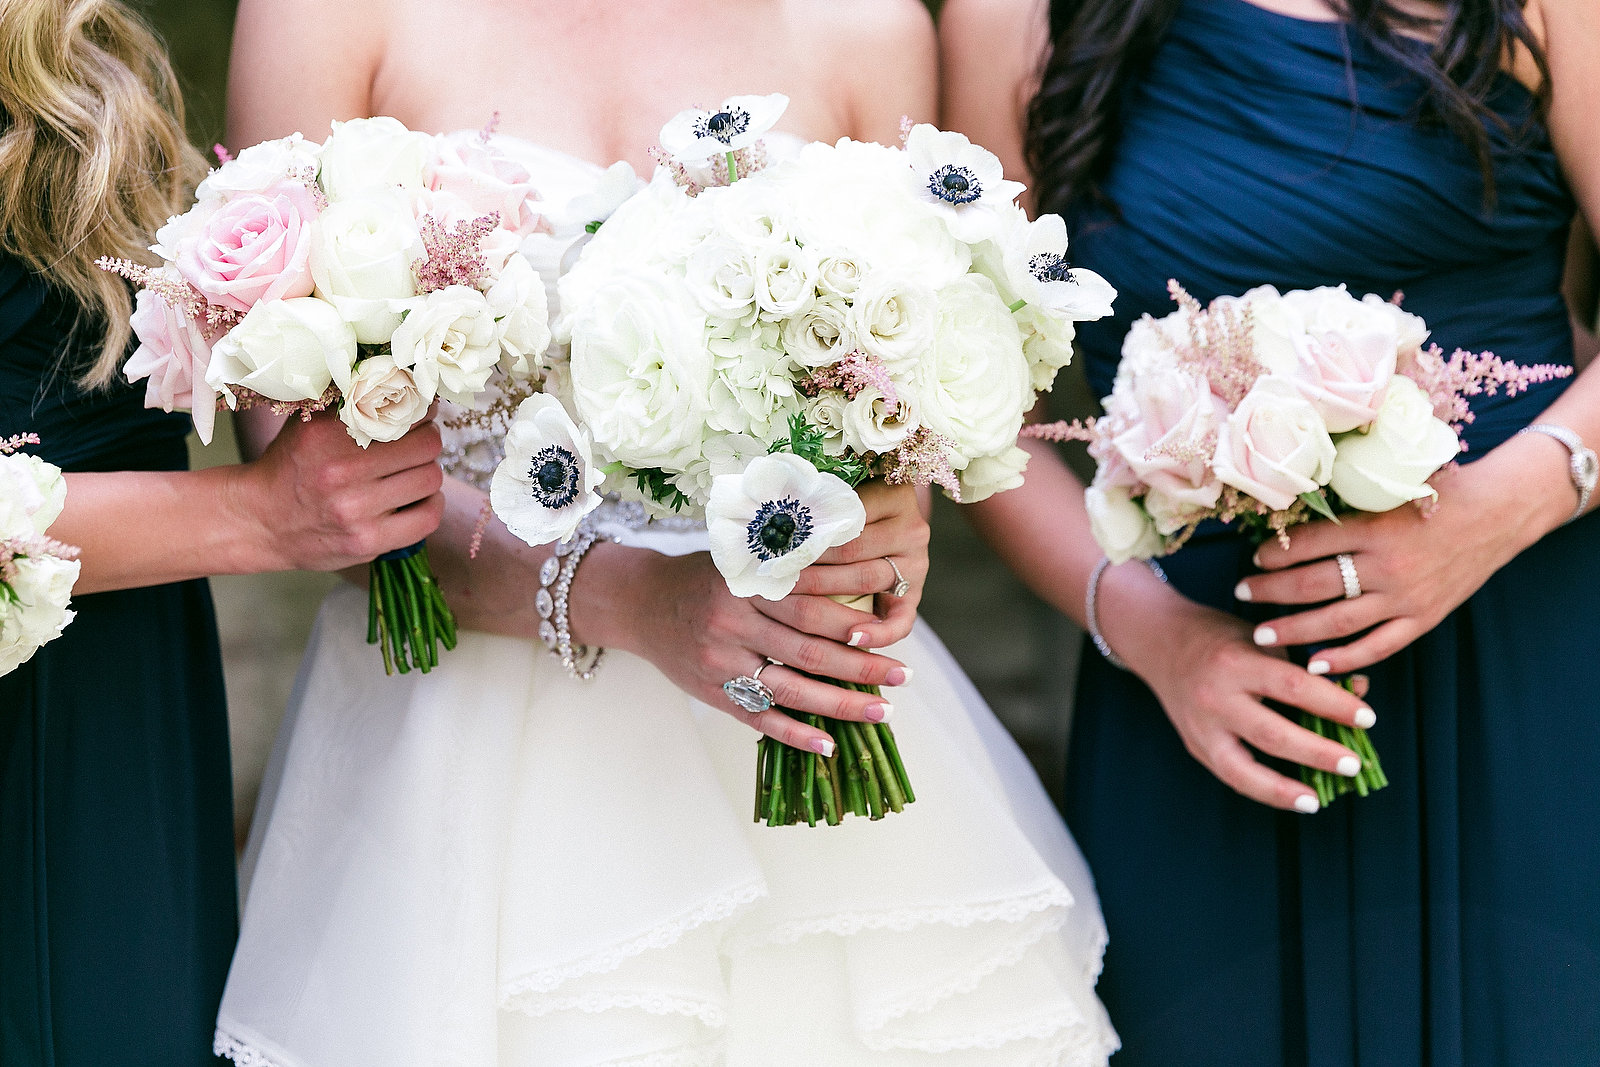 Wedding bouquets 7 styles to choose from for your ceremony inside flower bouquets mightylinksfo